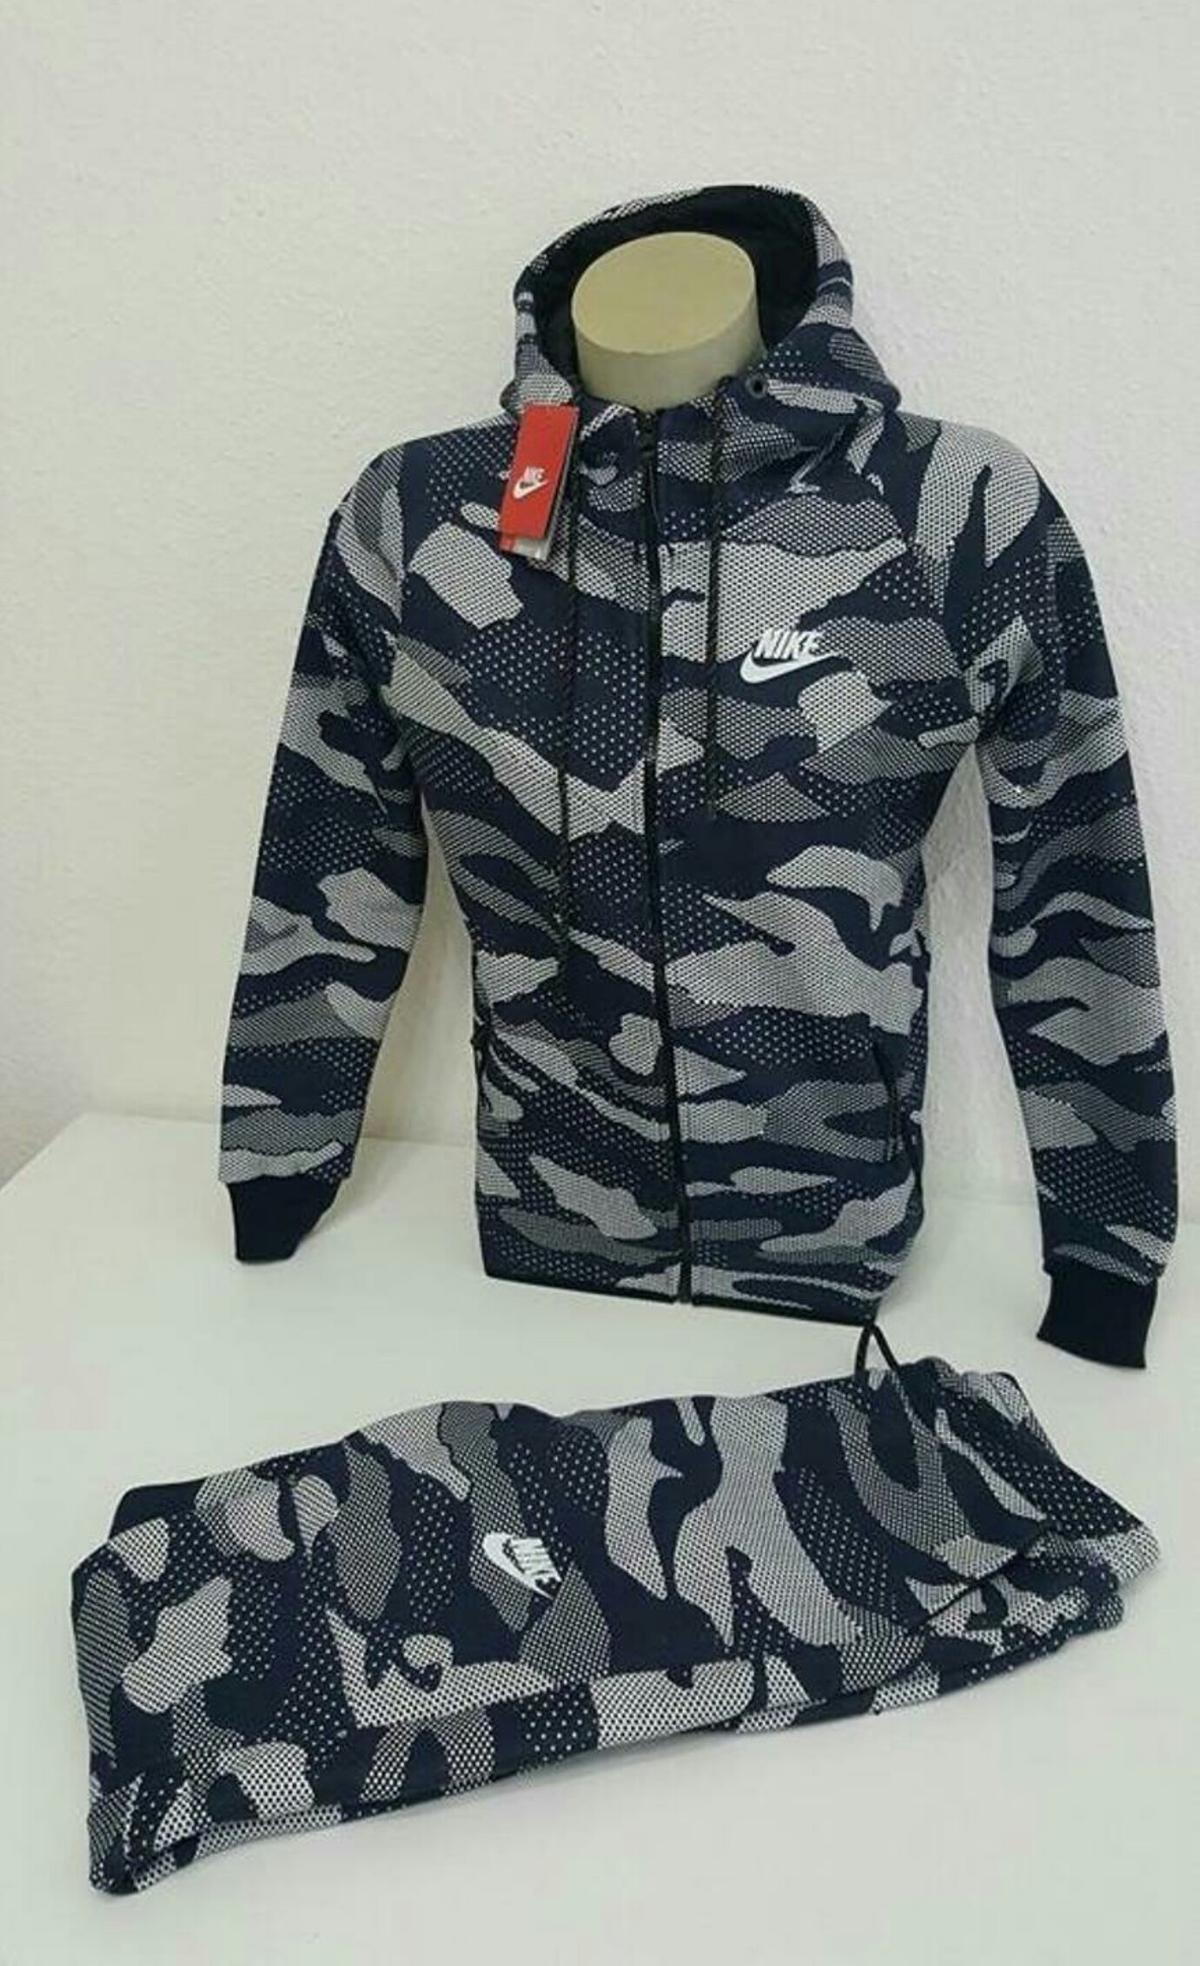 san francisco fashion style wholesale Nike Camouflage Anzug Herren